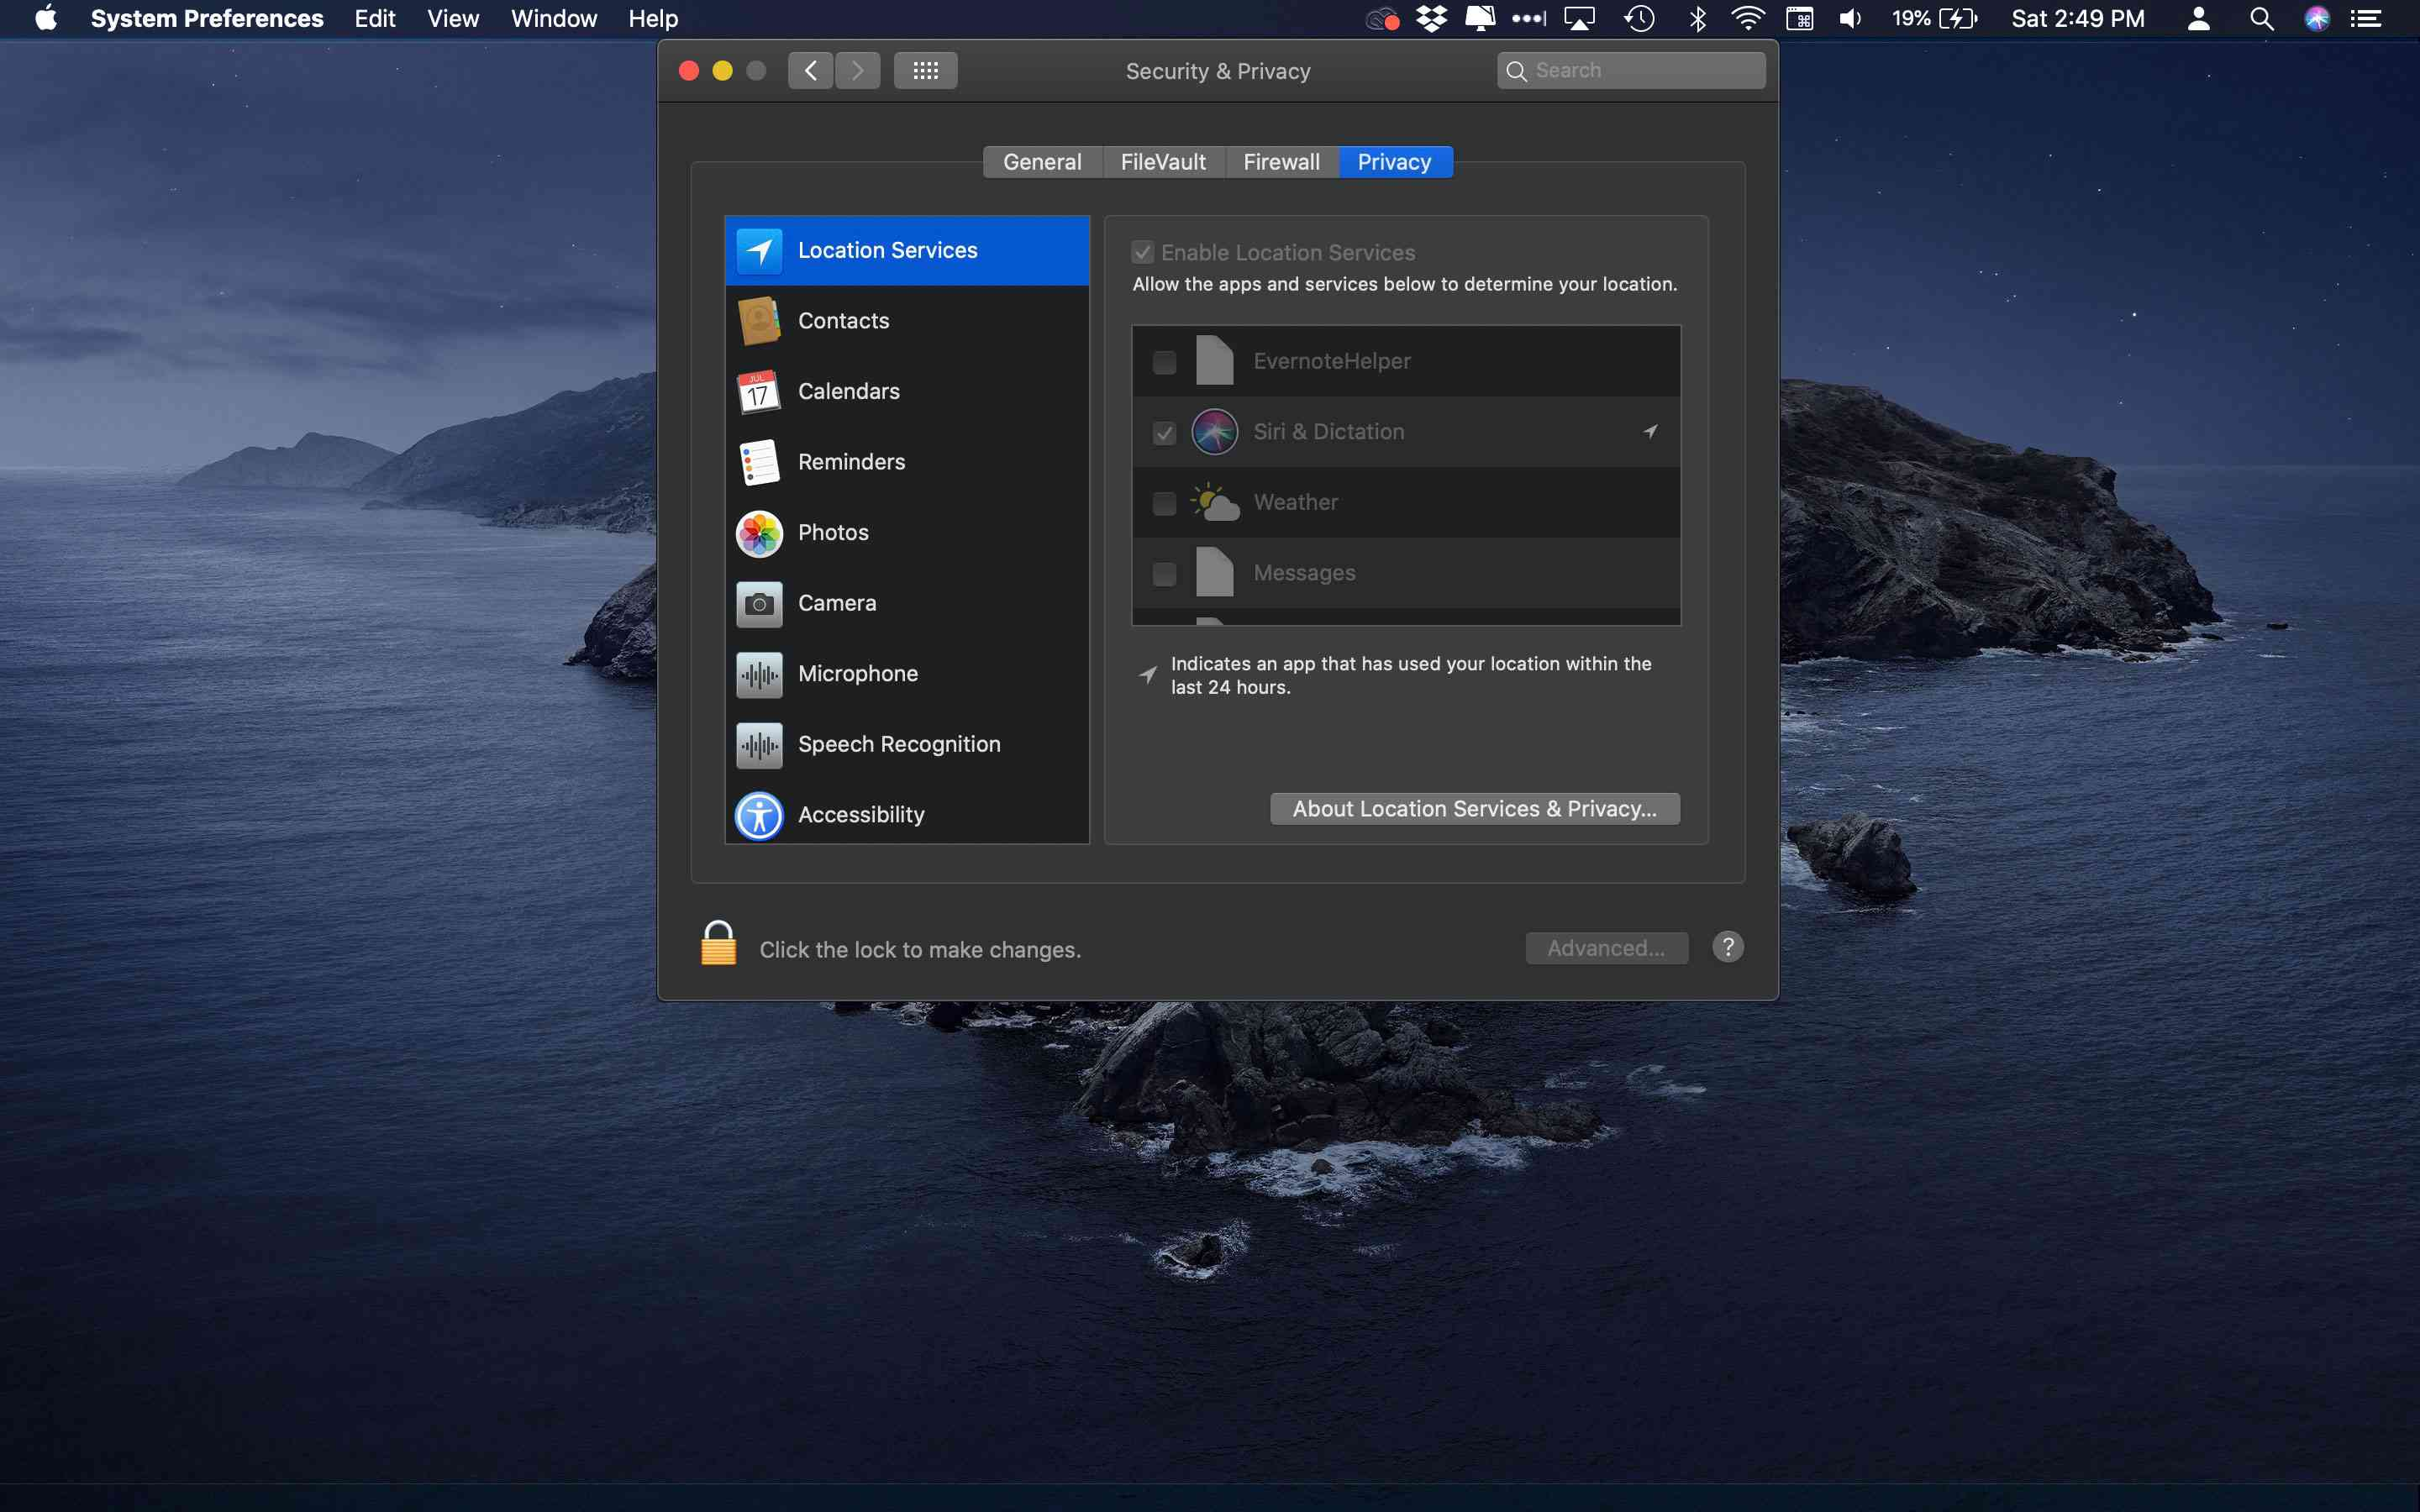 The Privacy tab and Location Services in macOS System Preferences